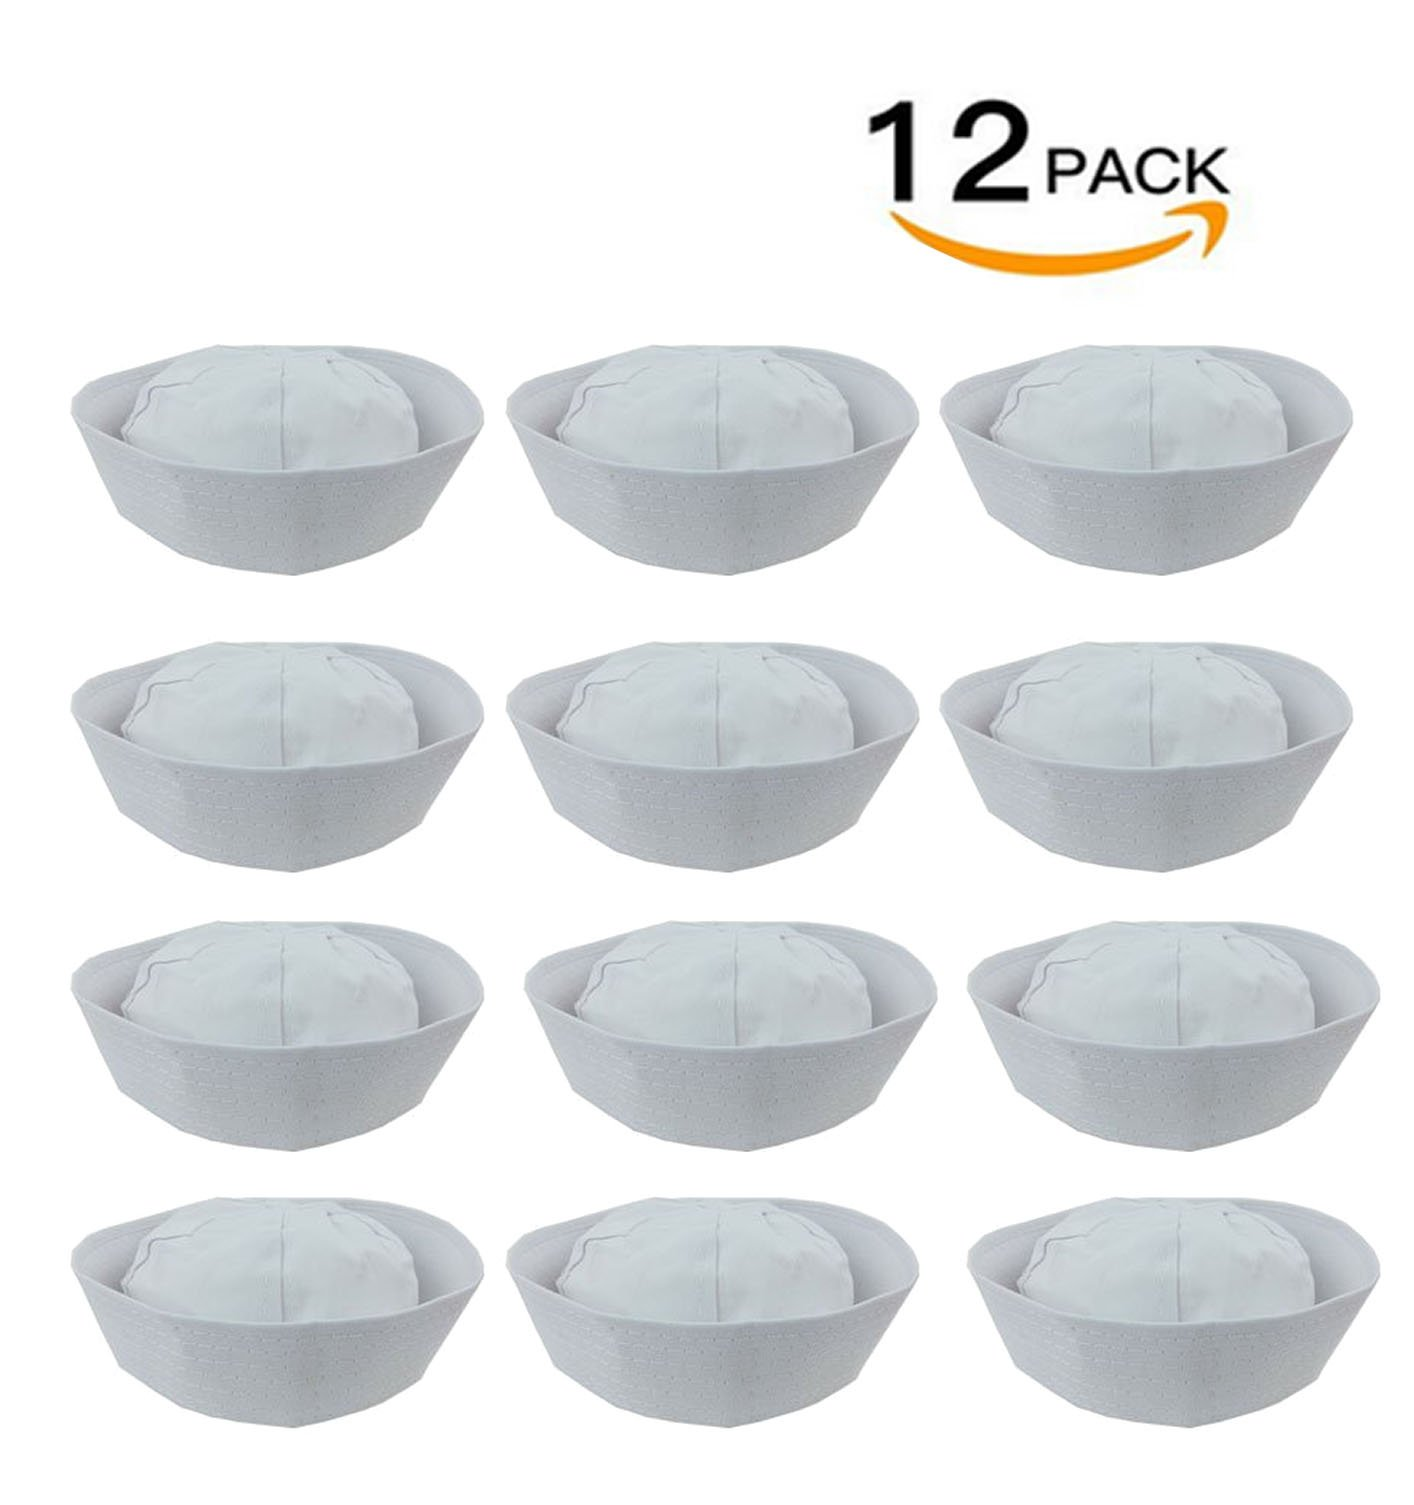 12 White Sailor Hats - hats fits kids and average adults, Dress Up Party Hats, By 4E's Novelty,